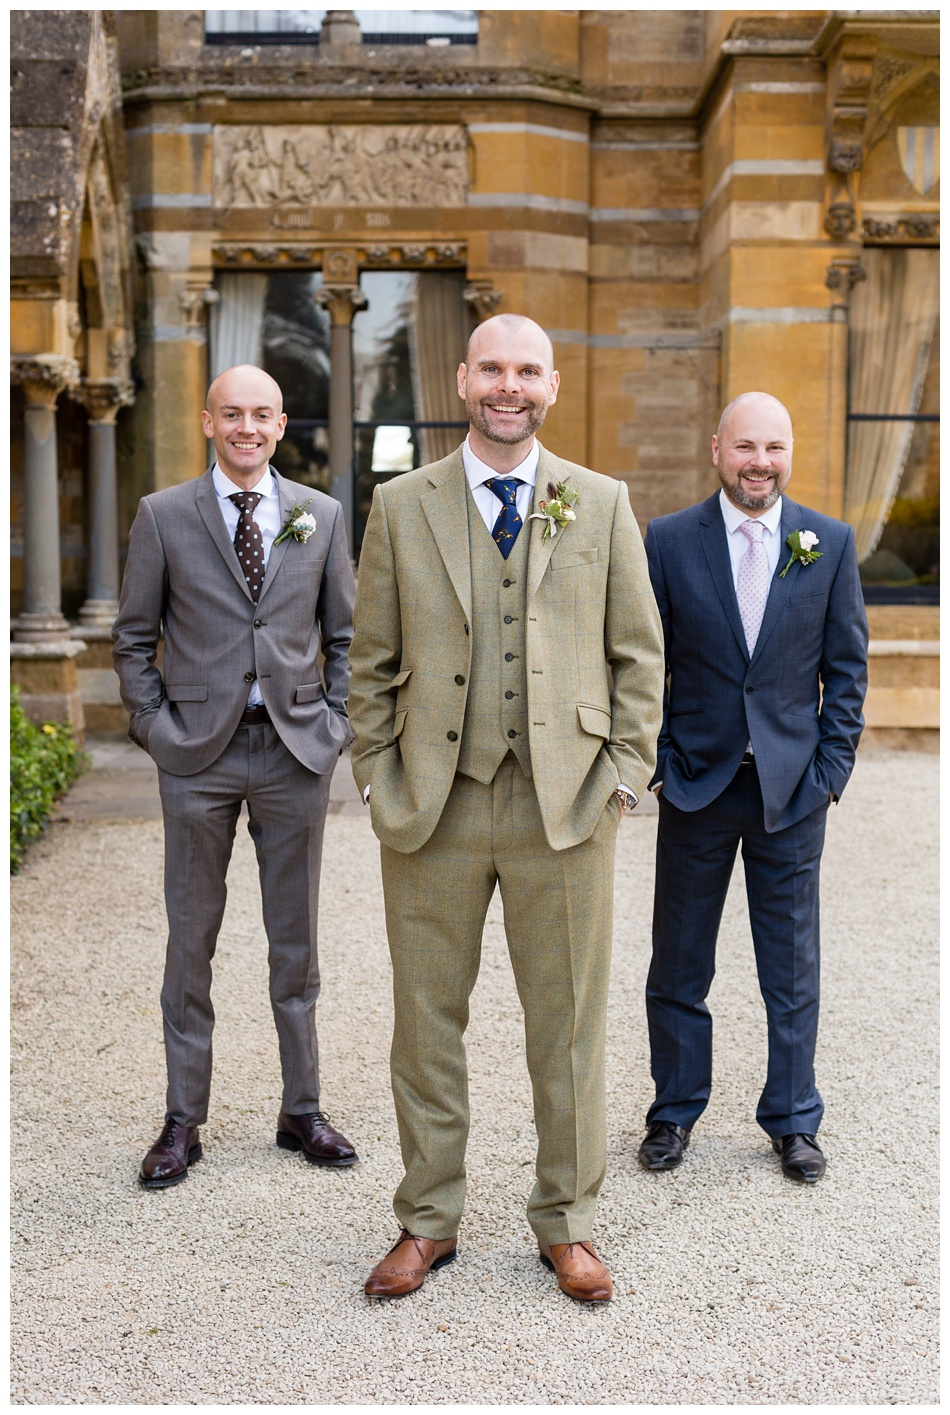 Groomsmen at Ettington Park Wedding